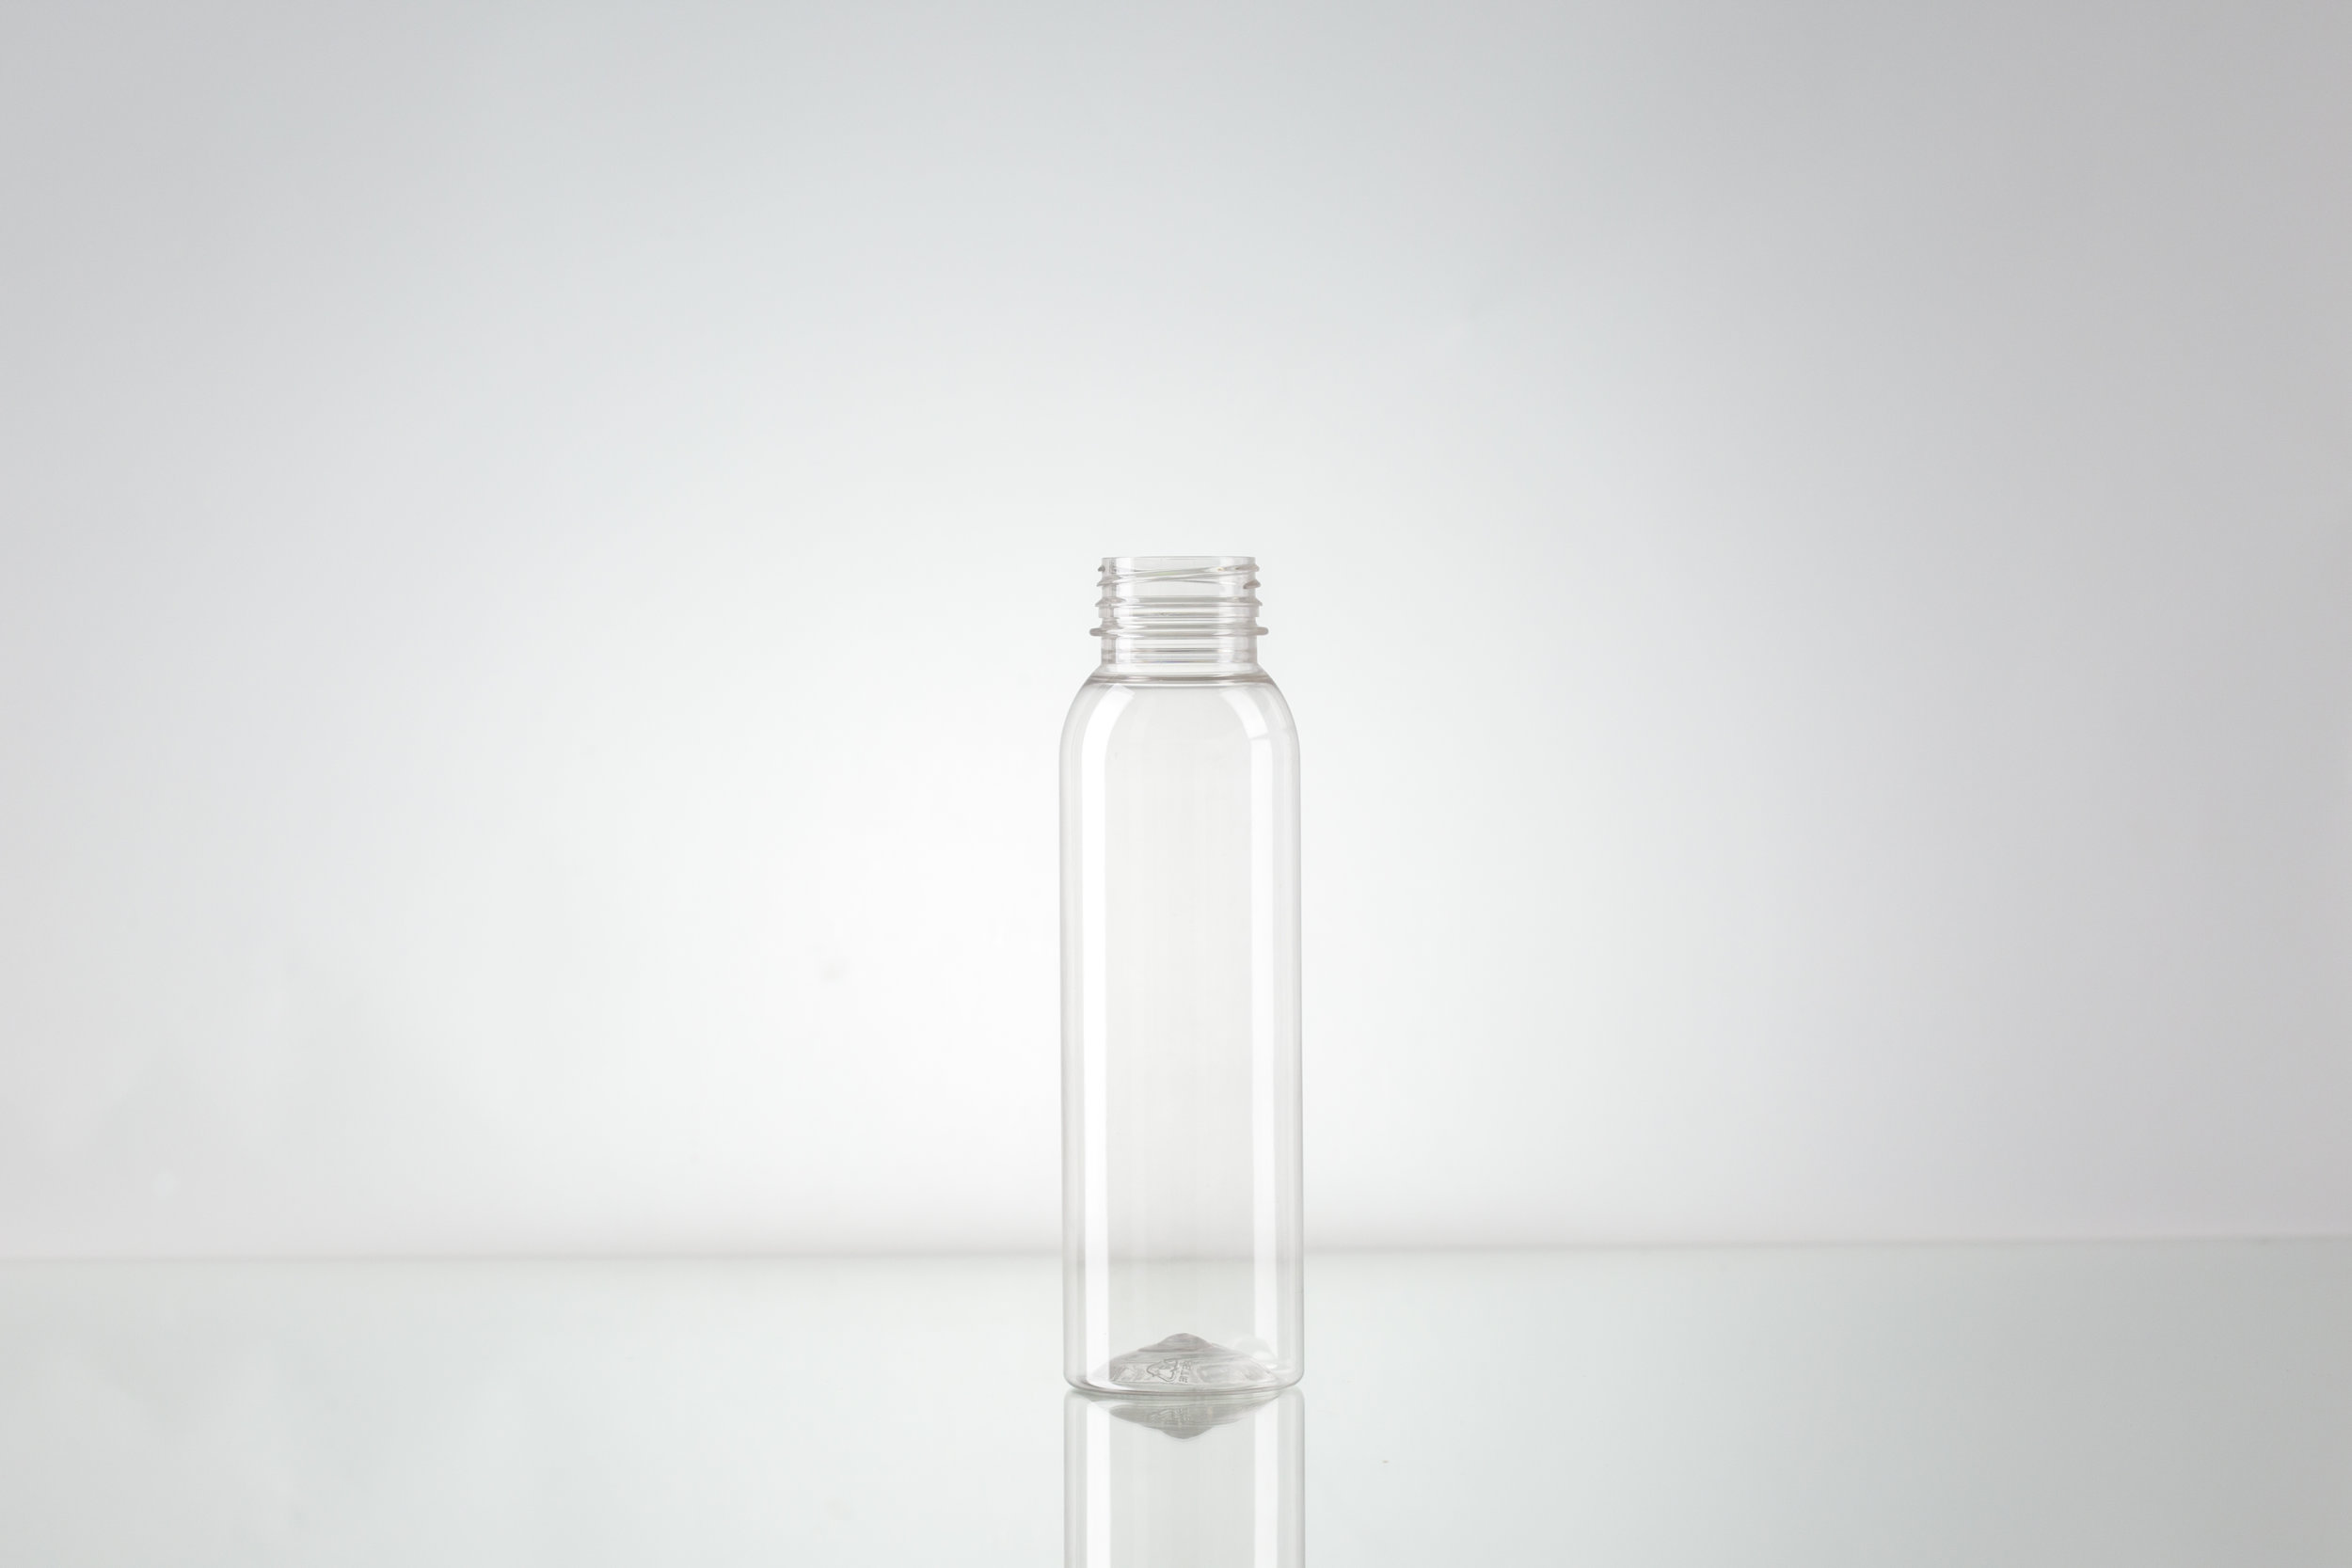 Bottles  Captiva offers a range of HPP-compliant sizes: 2 oz, 8 oz, 16 oz, 28 oz, 32 oz and 59 oz bottles.  We are committed to expanding our offerings in this emerging technology.